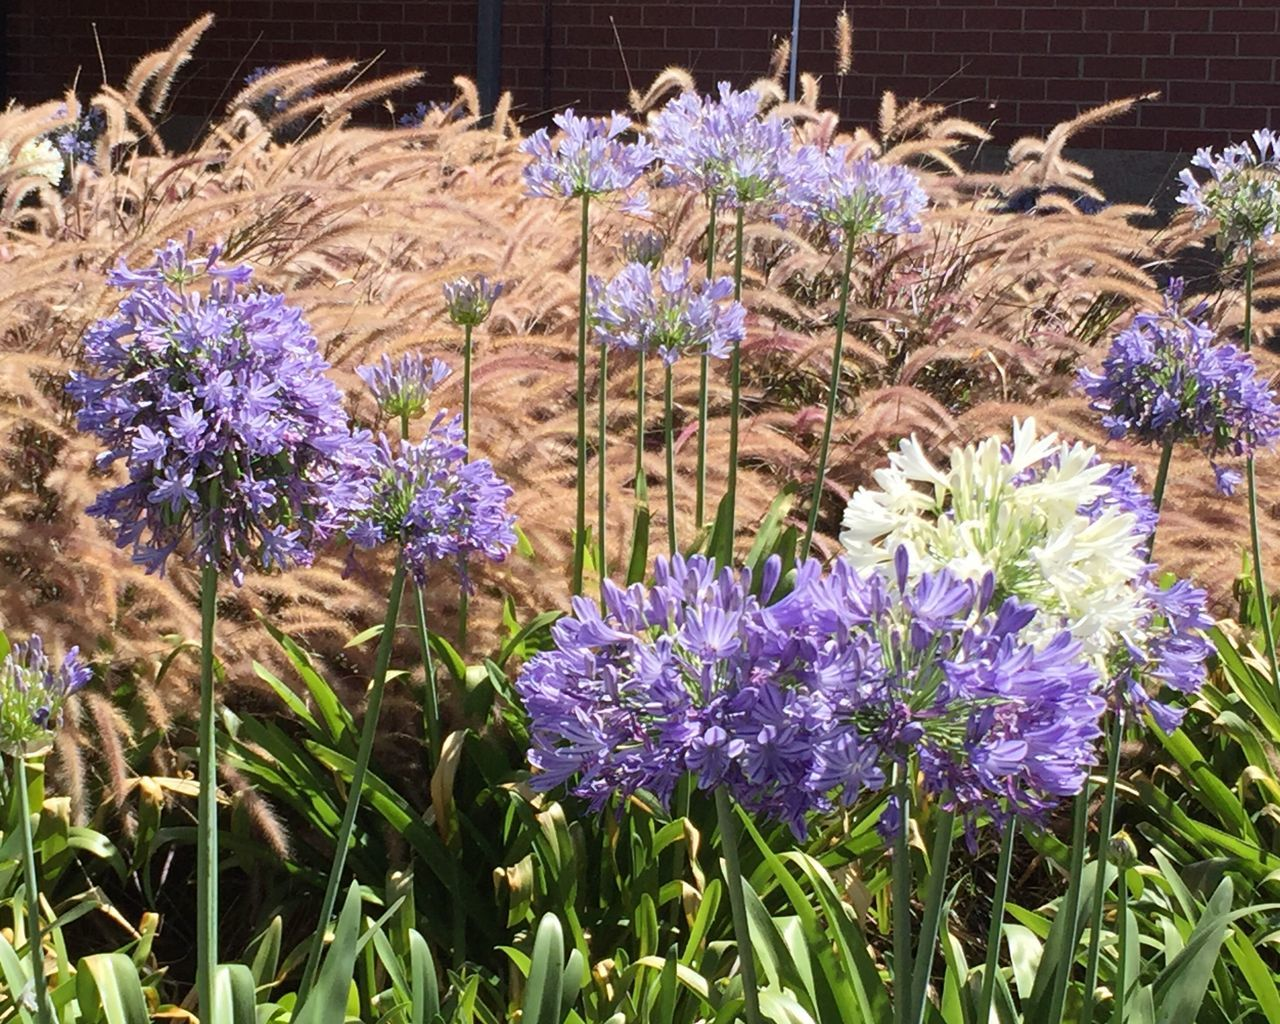 Agapanthus and Ornamental Grasses EyeEm Nature Lover Nature_collection Taking Photos Leaves Purple Flower Green Purple Plant Long Stems White Flowers Flowers